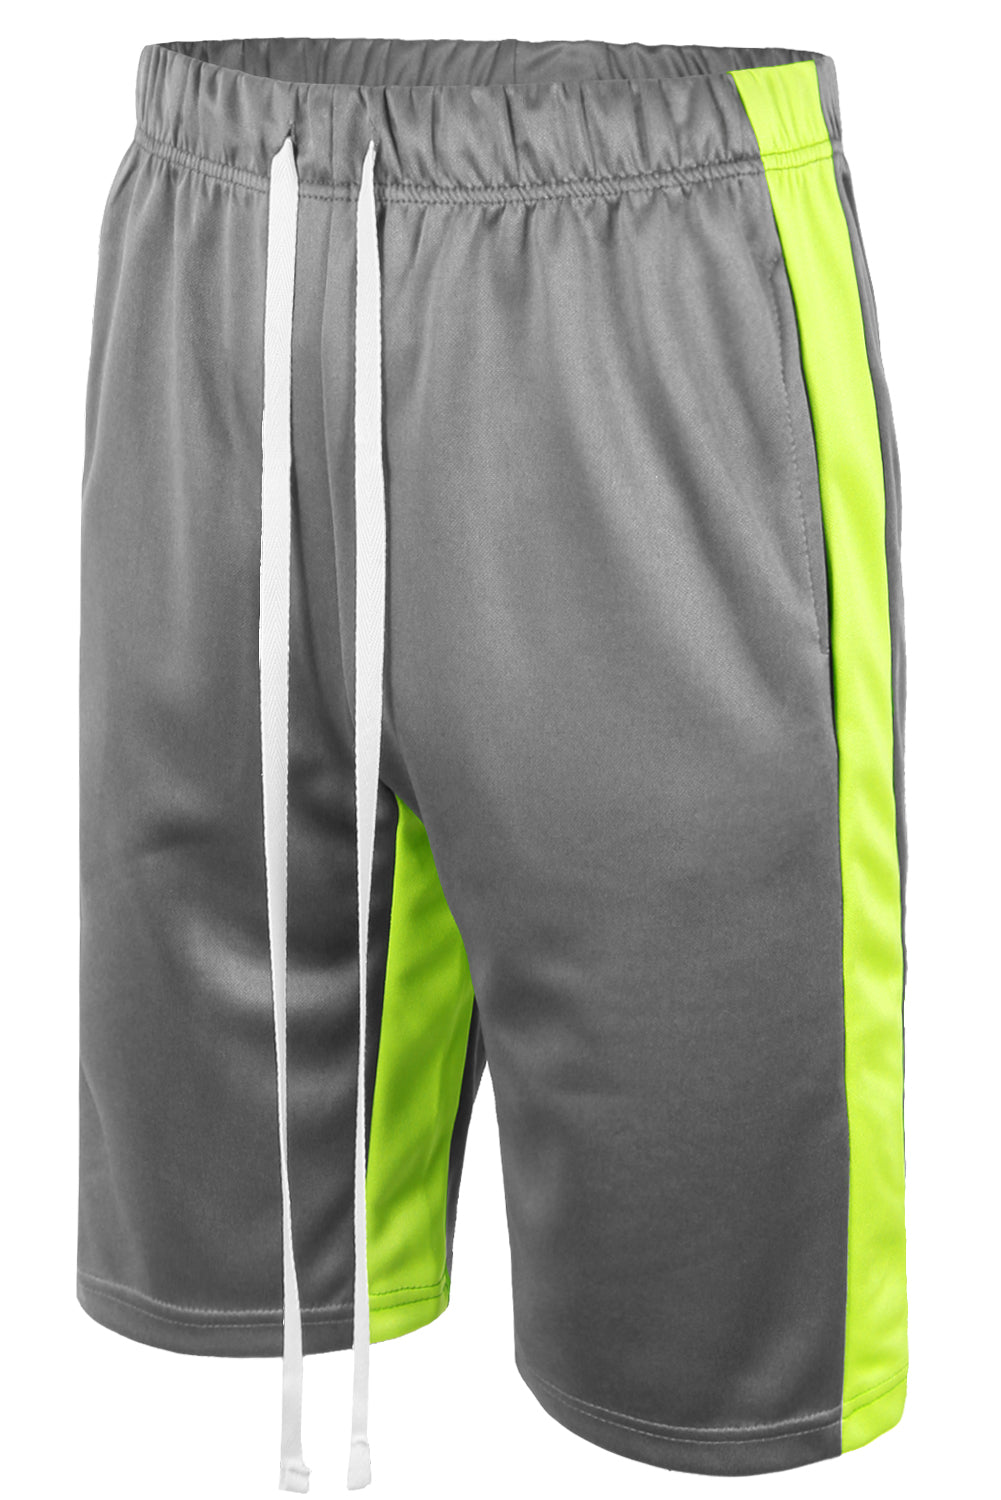 Track Shorts Side Stripes (Grey Lime)